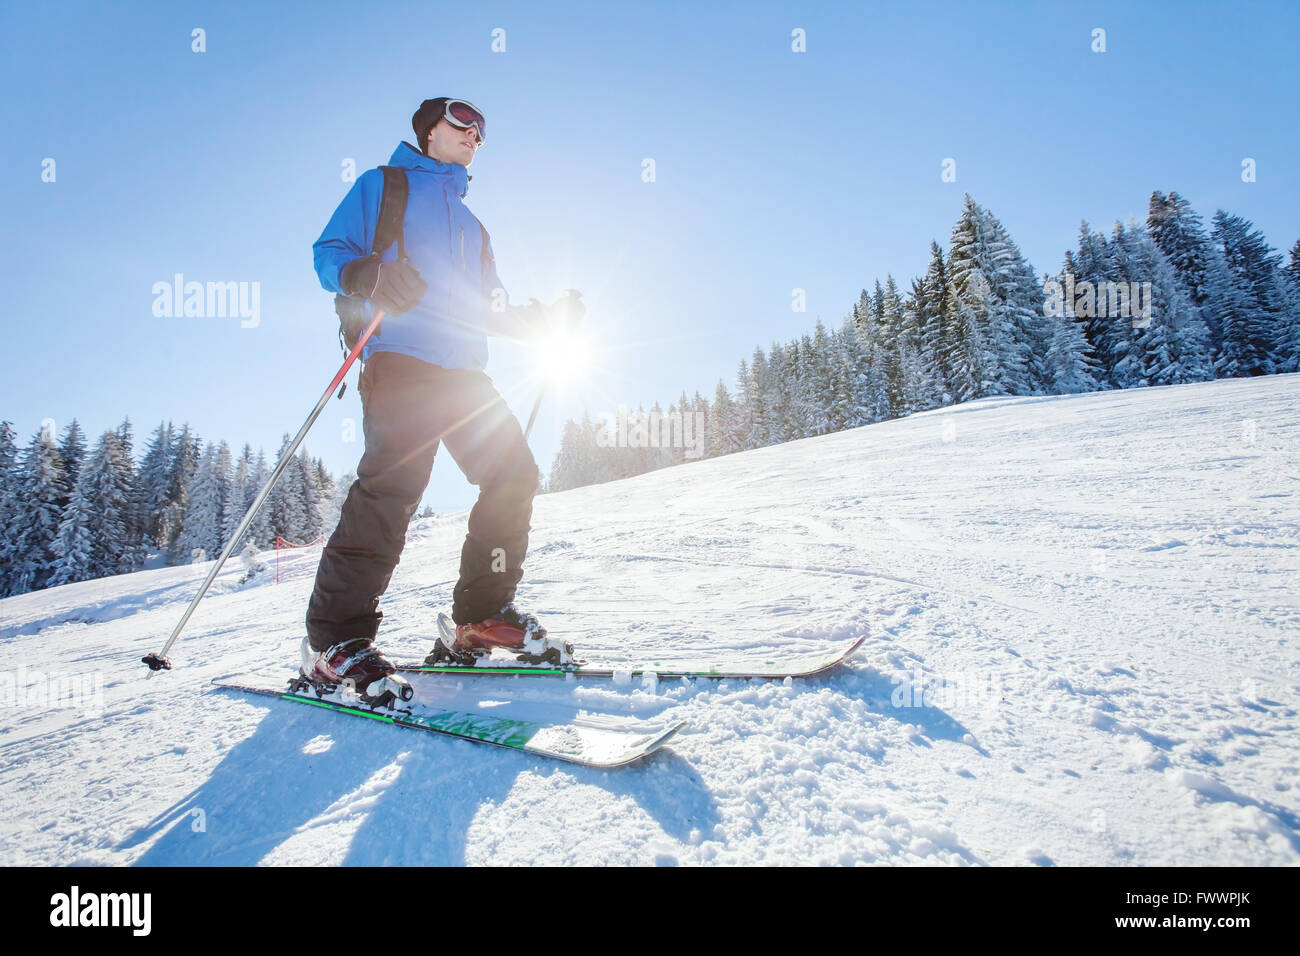 ski in Alps, winter sport, young skier on the slope in sunny day - Stock Image